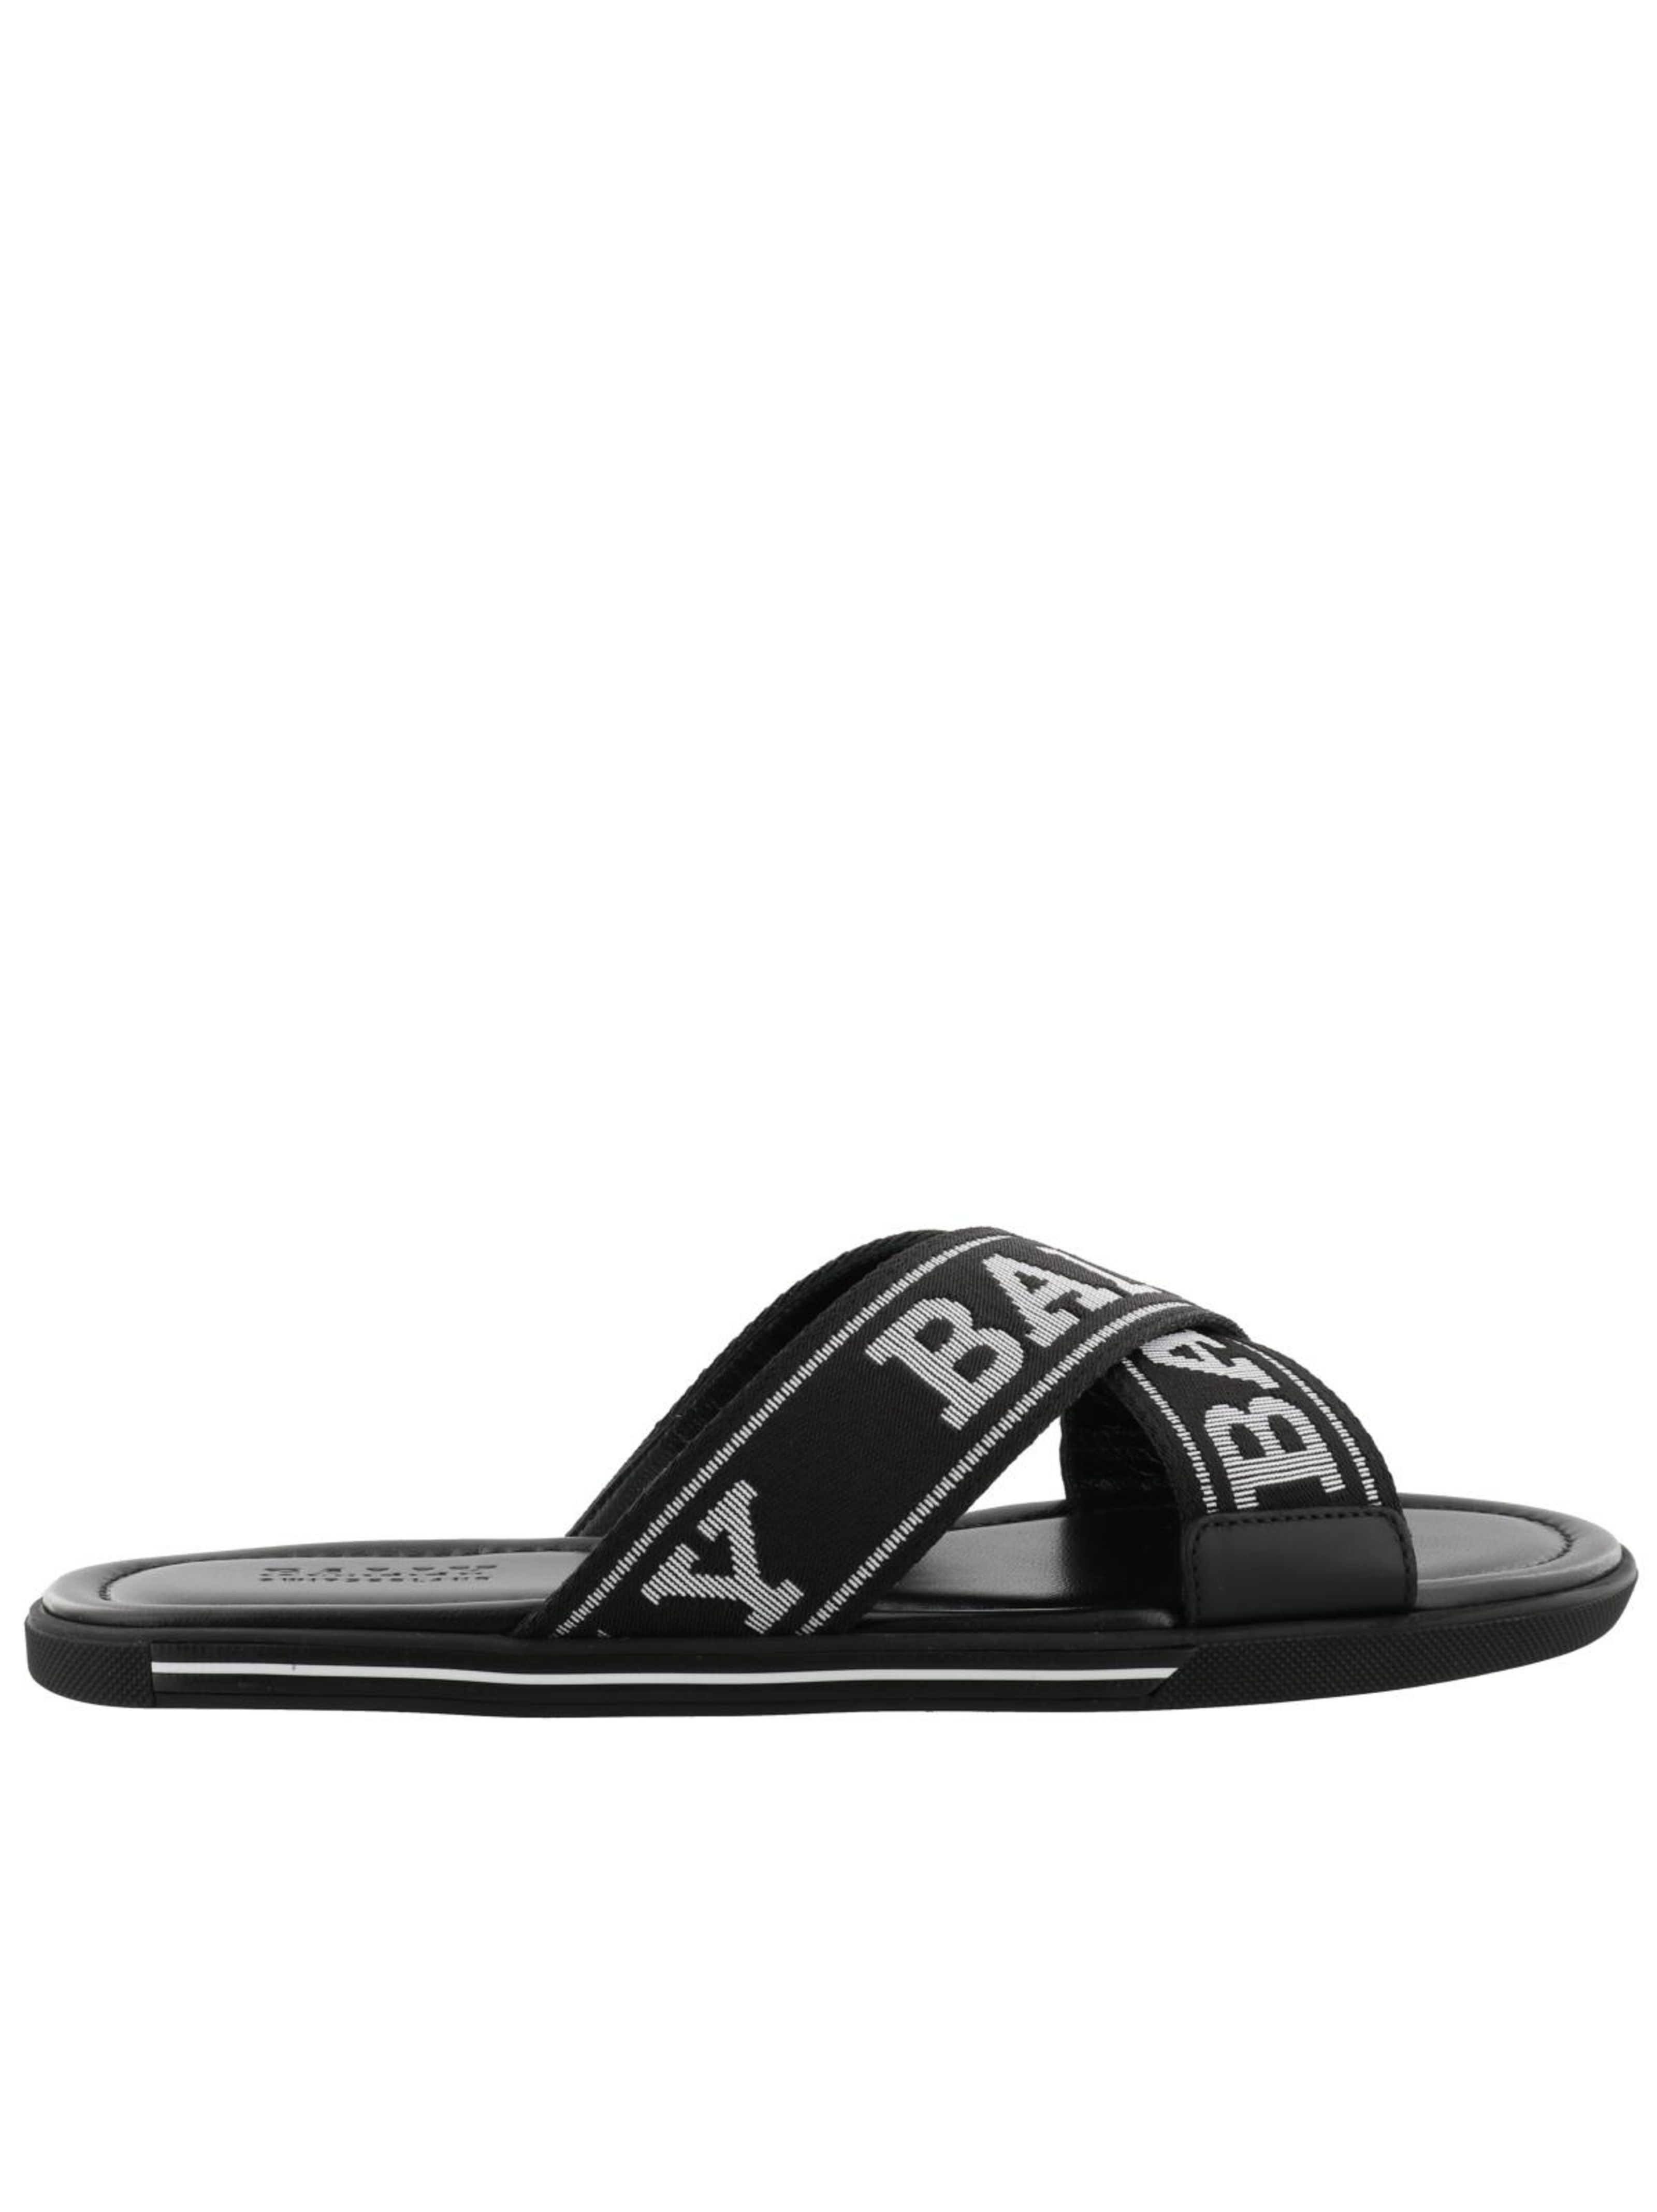 94f444010605 BALLY BONKS SLIDE SANDALS.  bally  shoes